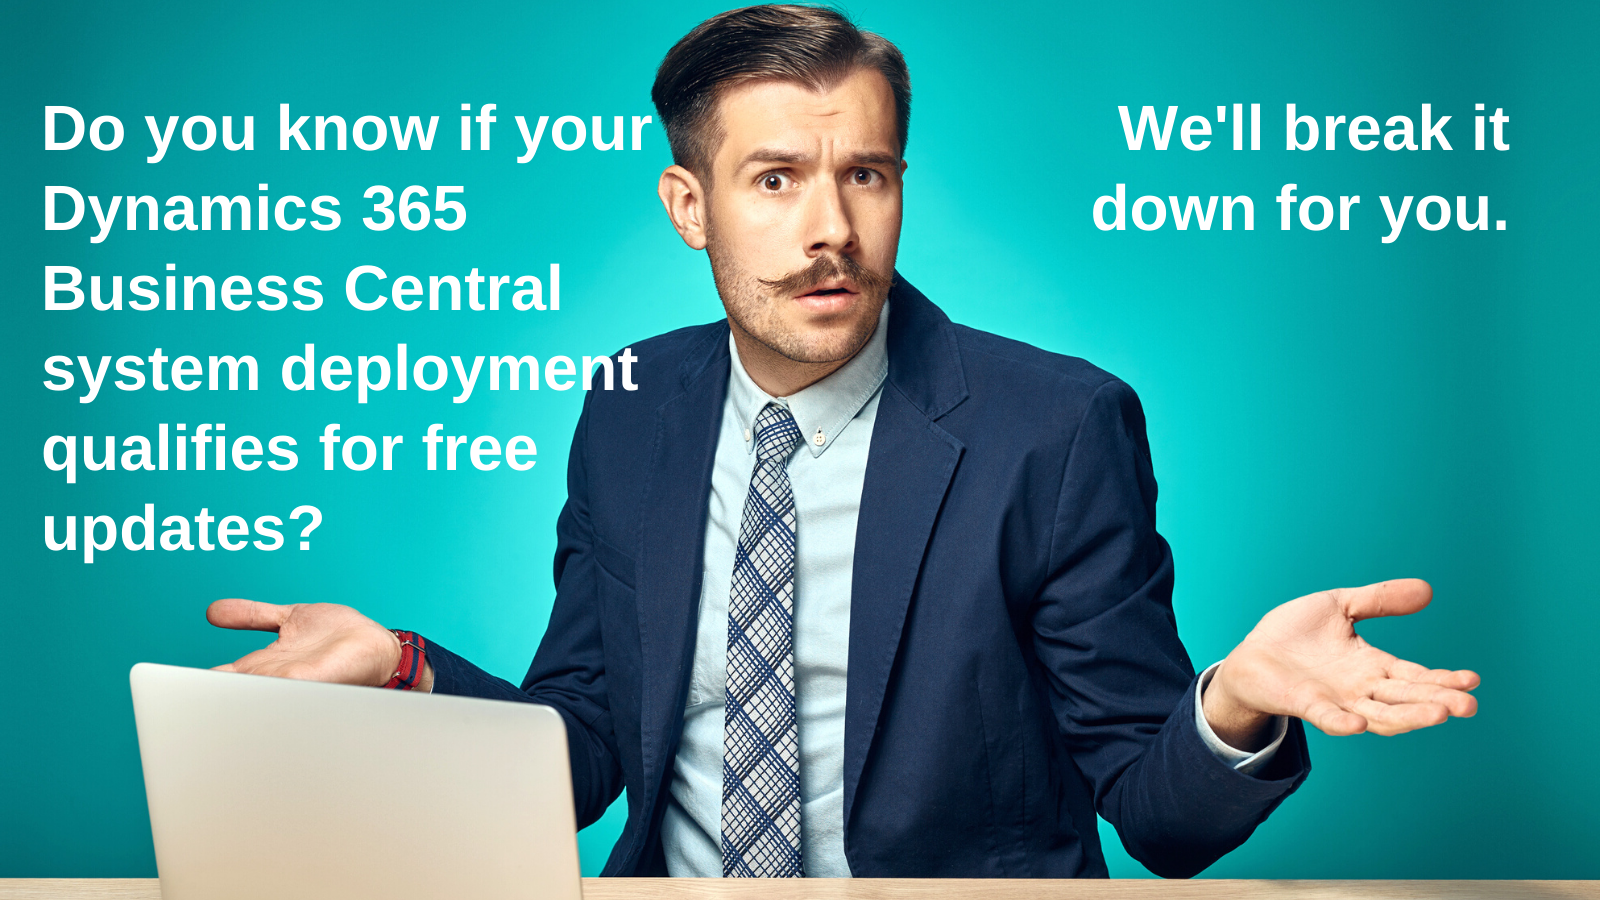 Do you know if your Dynamics 365 Business Central deployment qualifies for free updates?